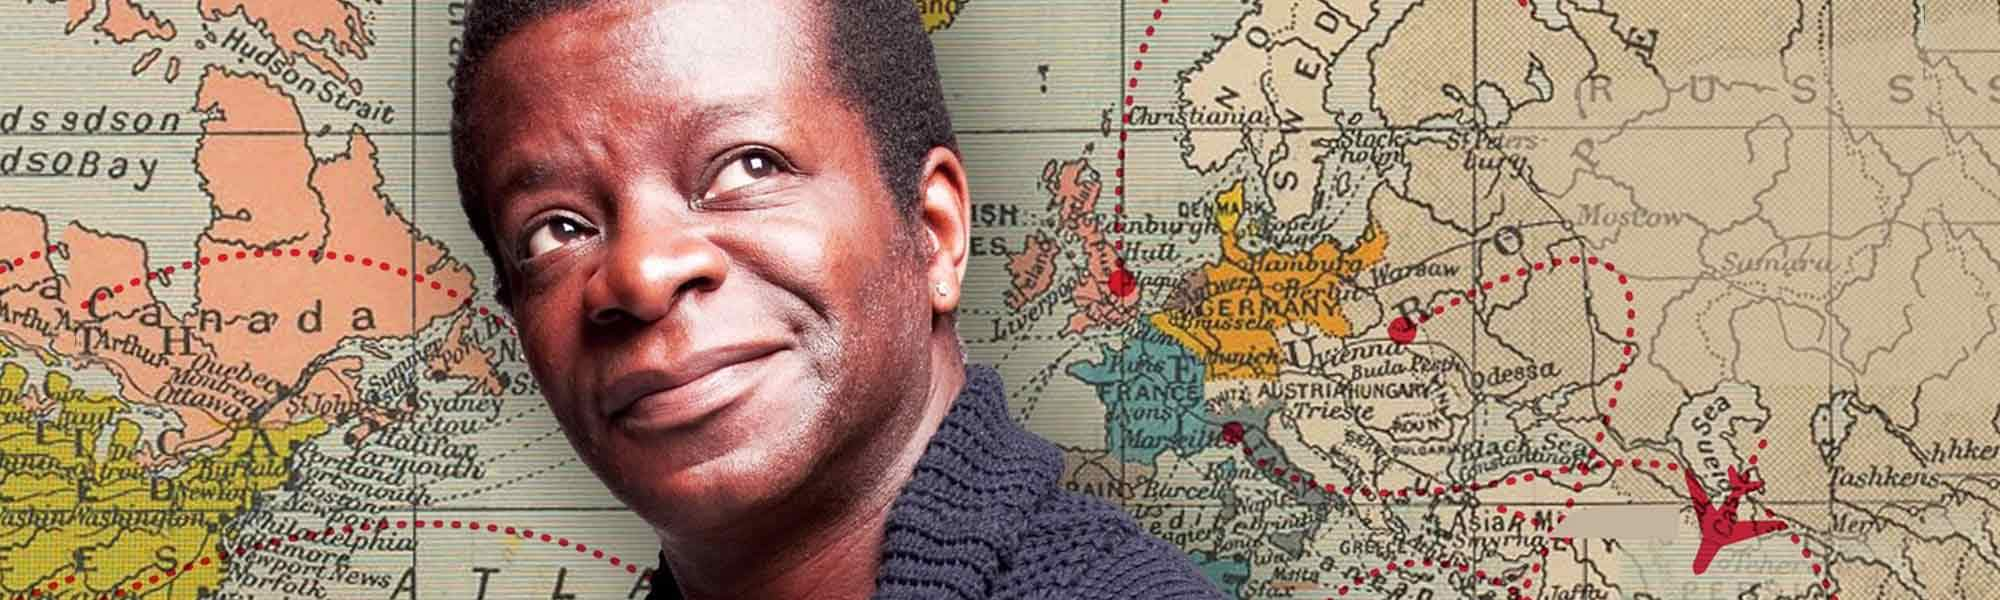 Theatre performances Stephen K Amos: World Famous at the Underbelly Festival